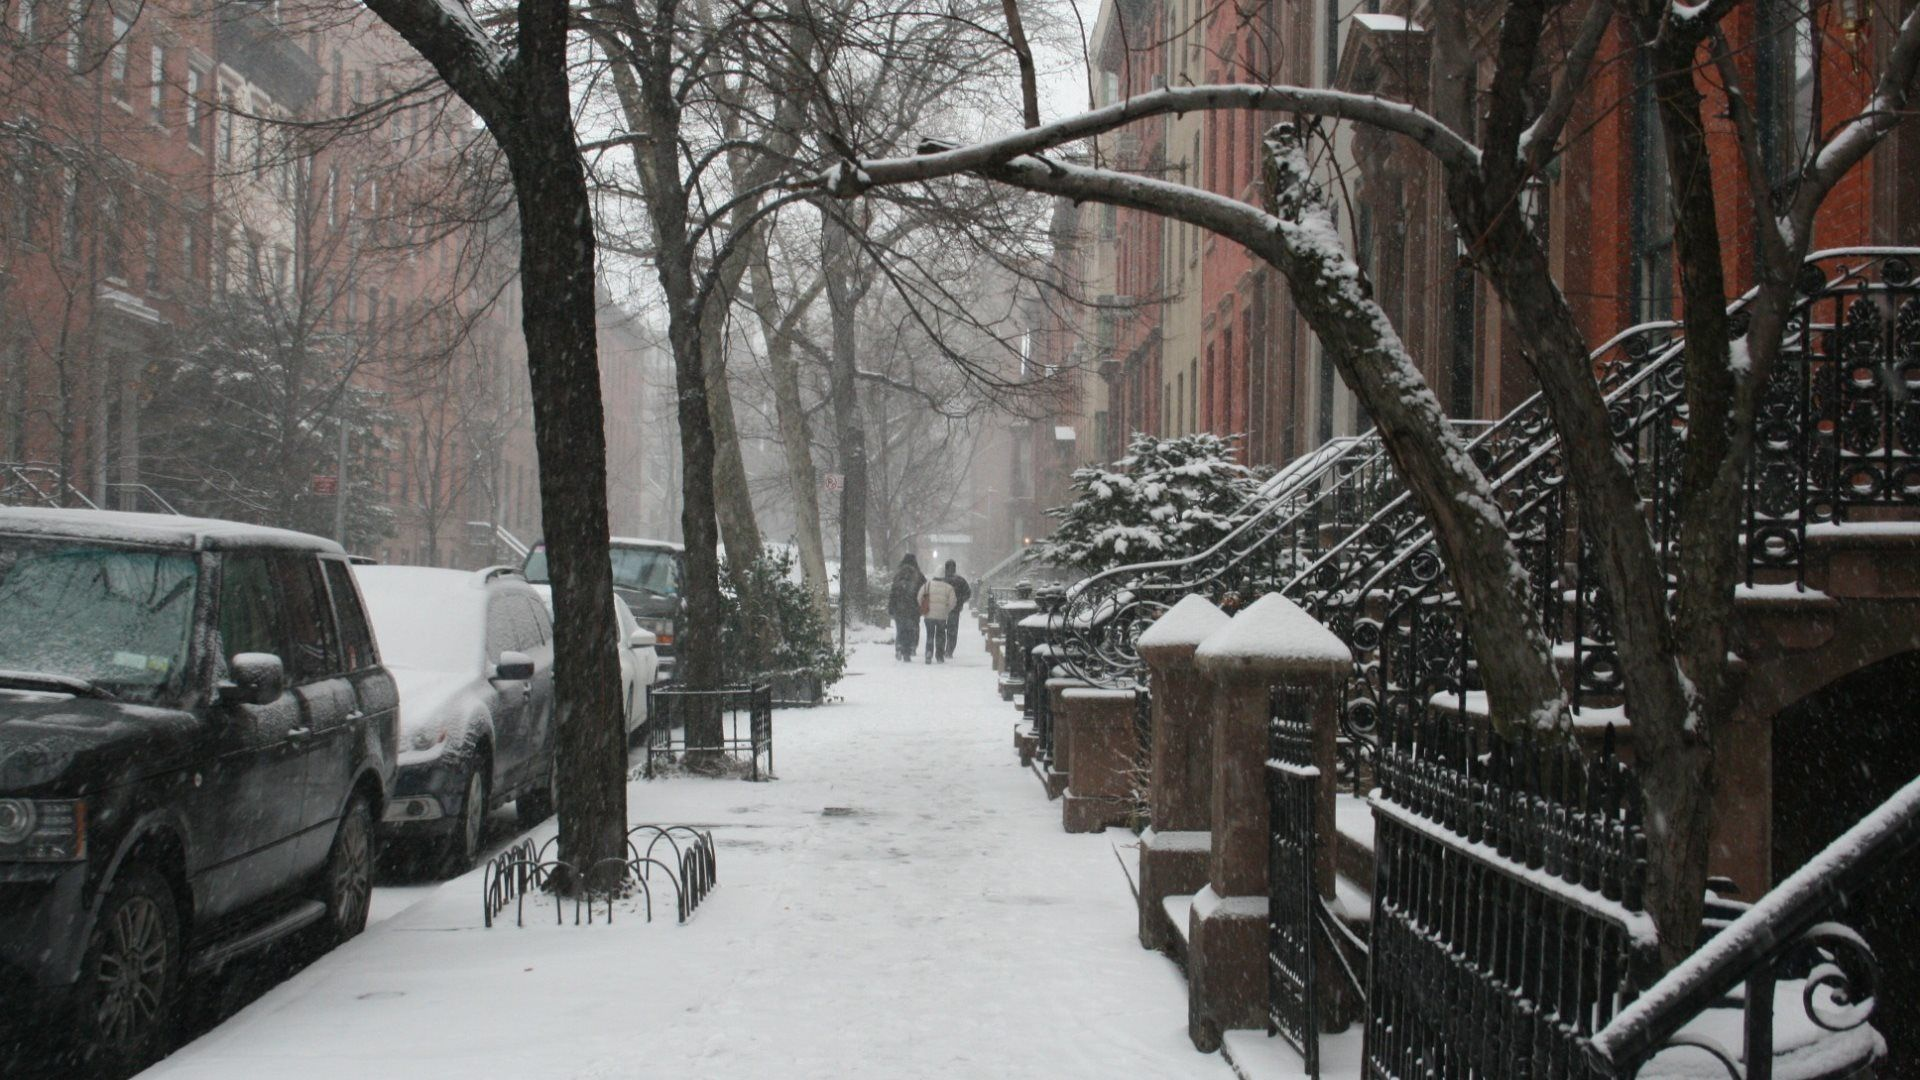 Pin By Wall Lucky On Ny In Snow New York Wallpaper New York Street New York Christmas